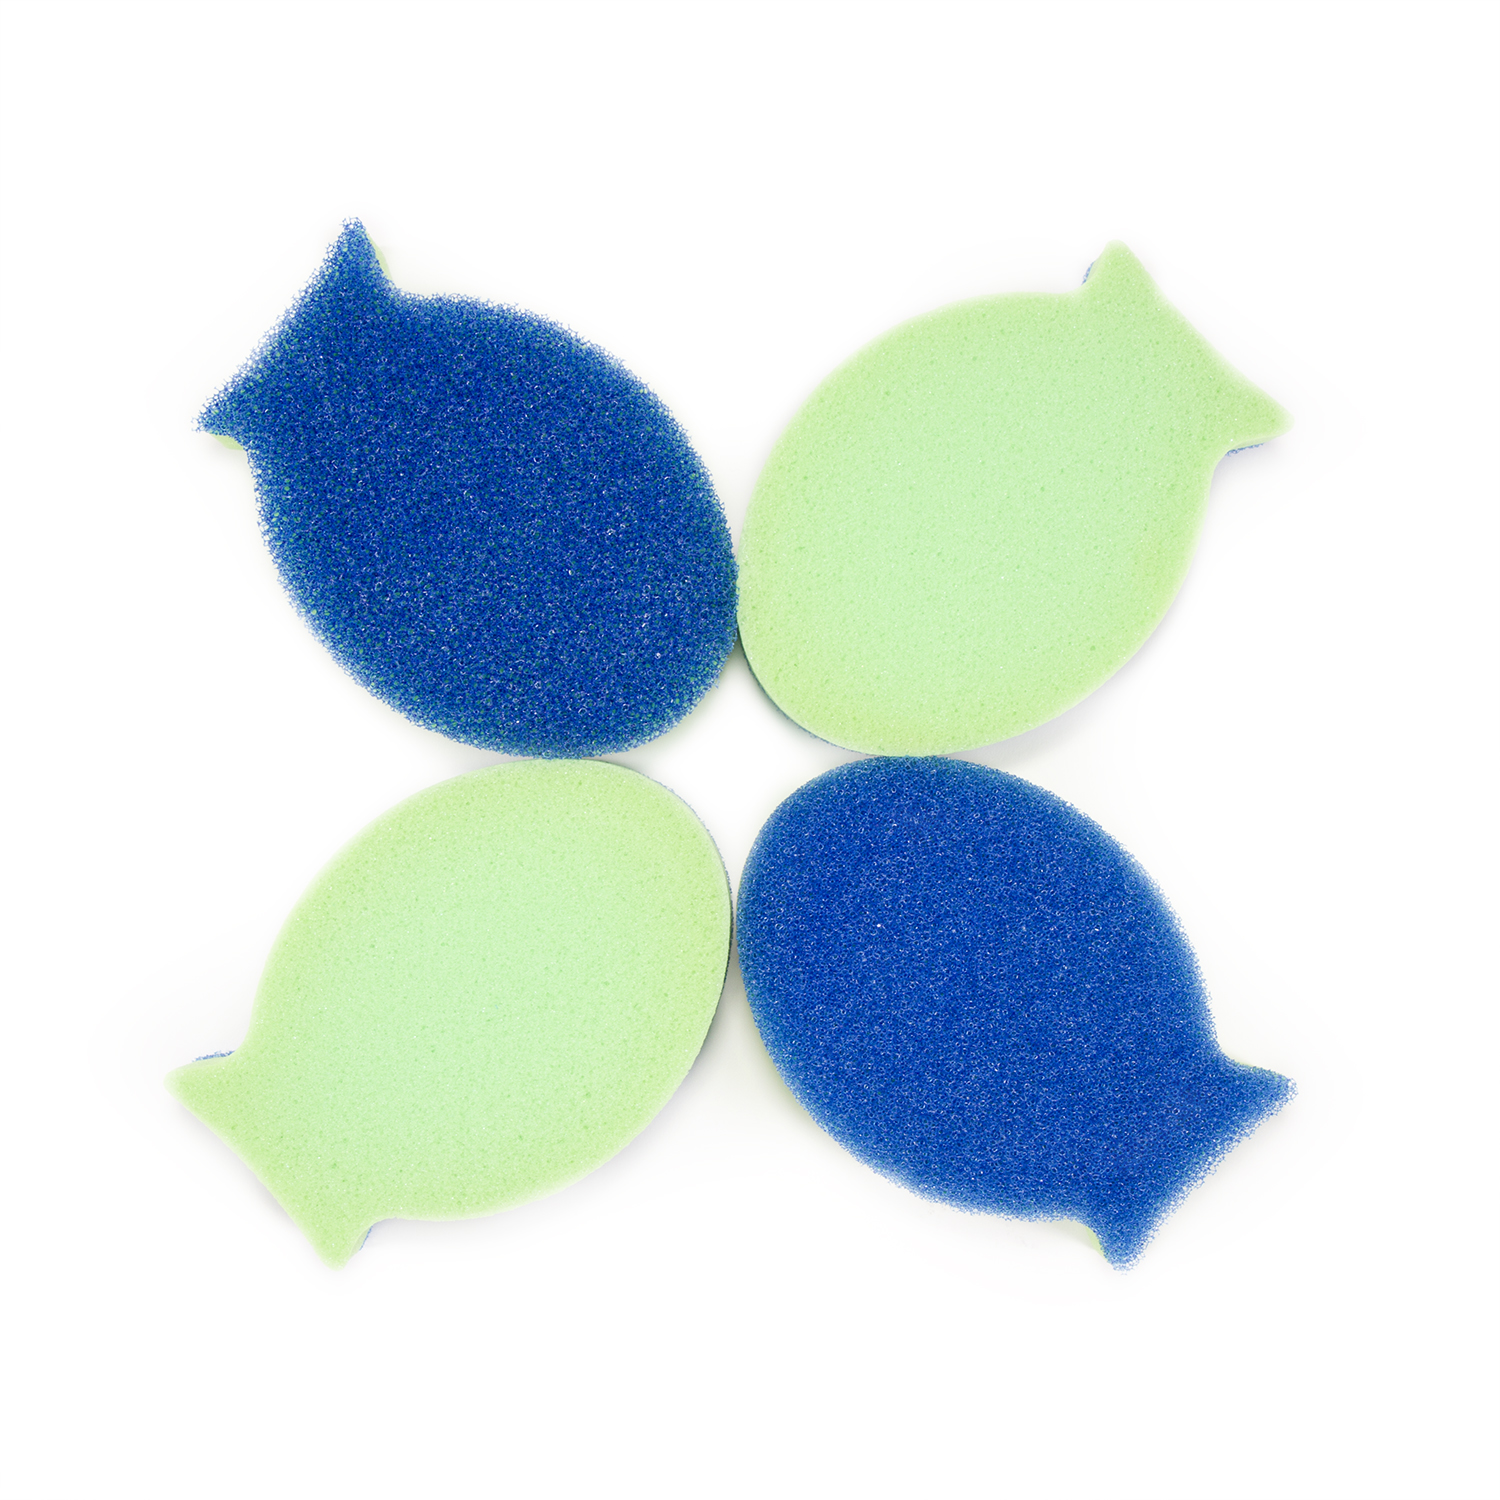 dishfish-dual-4-pack-product-image-02.jpg